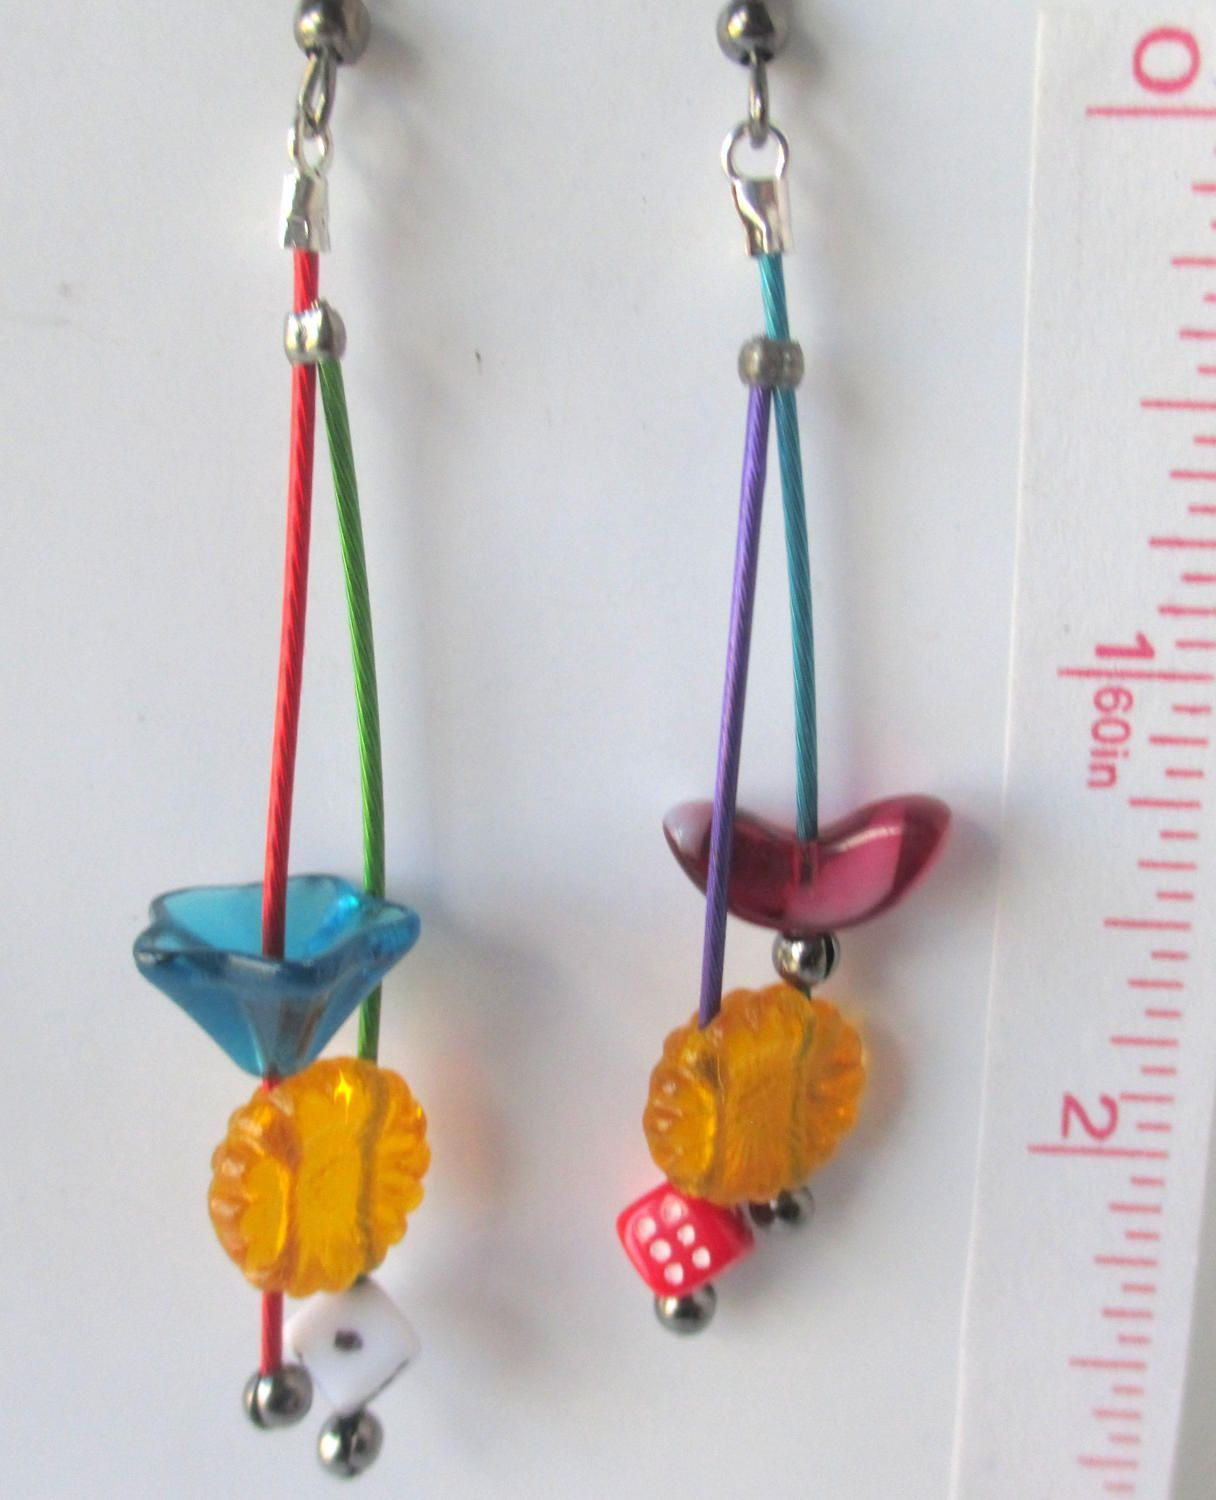 Candy, dangles,dice, turquoise, red, blue, green, purple,mobiles, unmatched steampunk, fun, colorful and contemporary by Lindatwist on Etsy